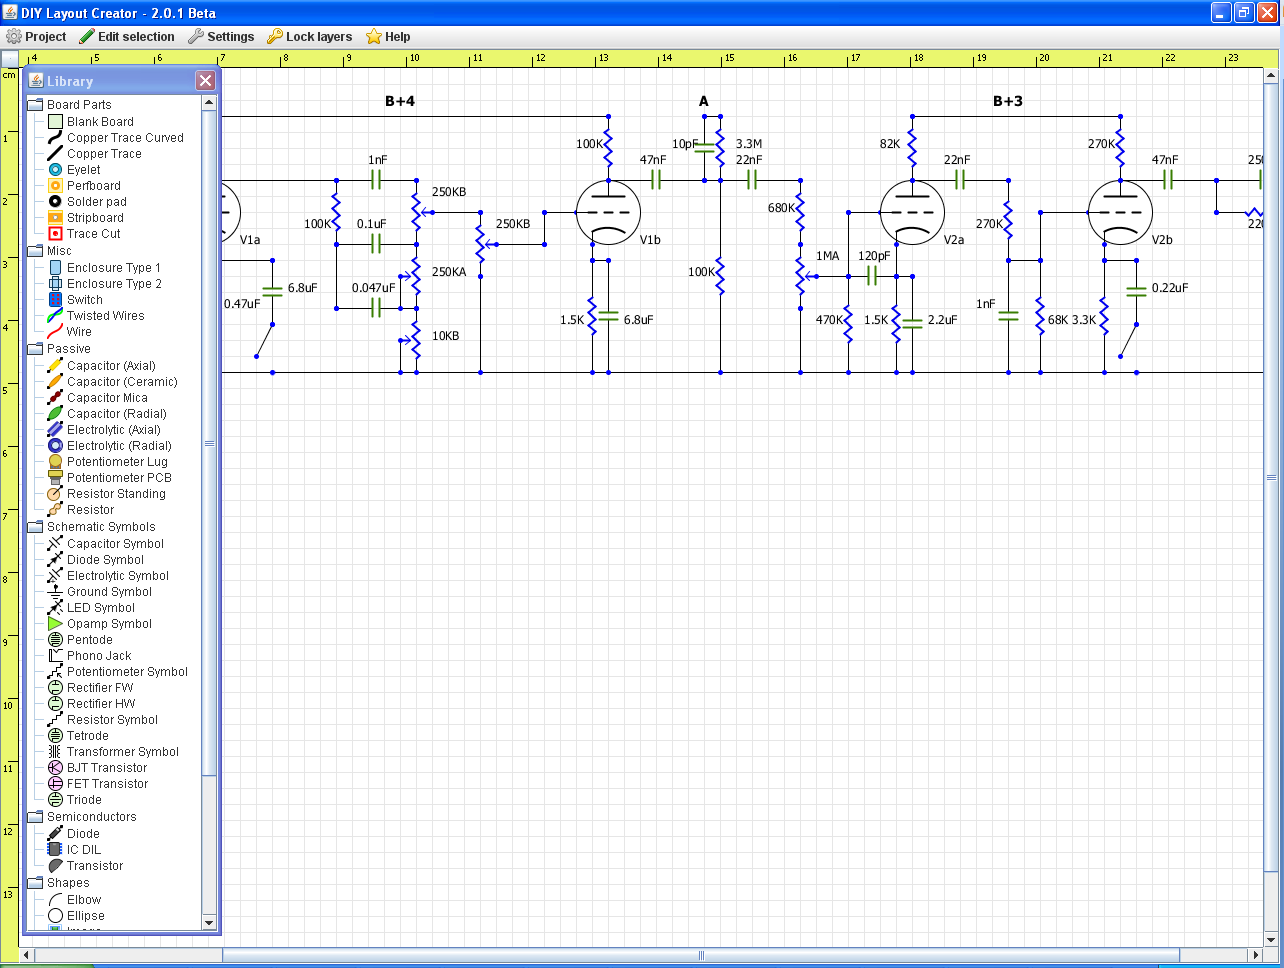 Software diy layout creator diy fever building my own guitars amps and pedals Building layout maker